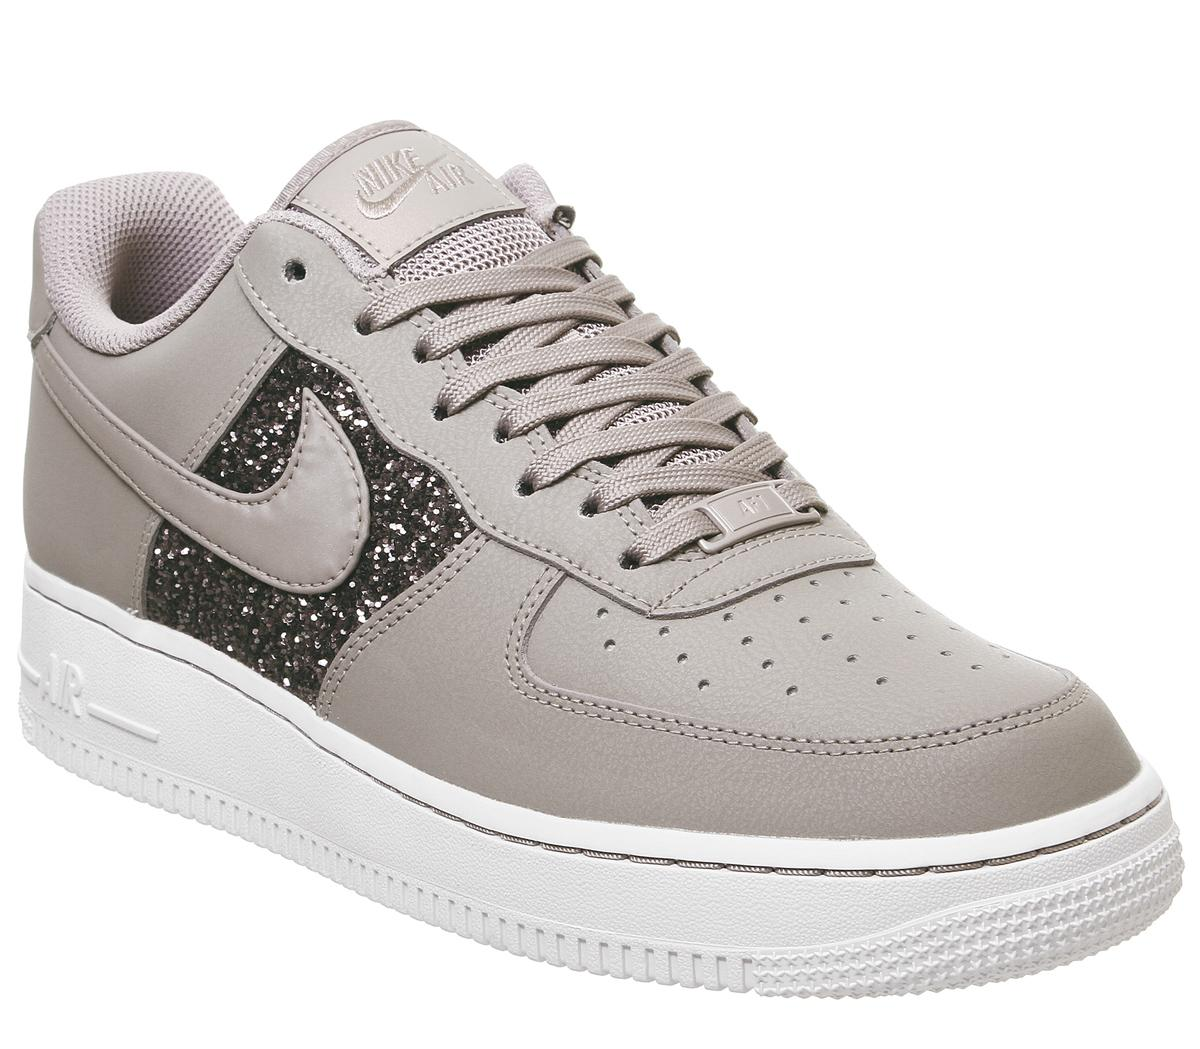 Air Force 1 Glitter Pack